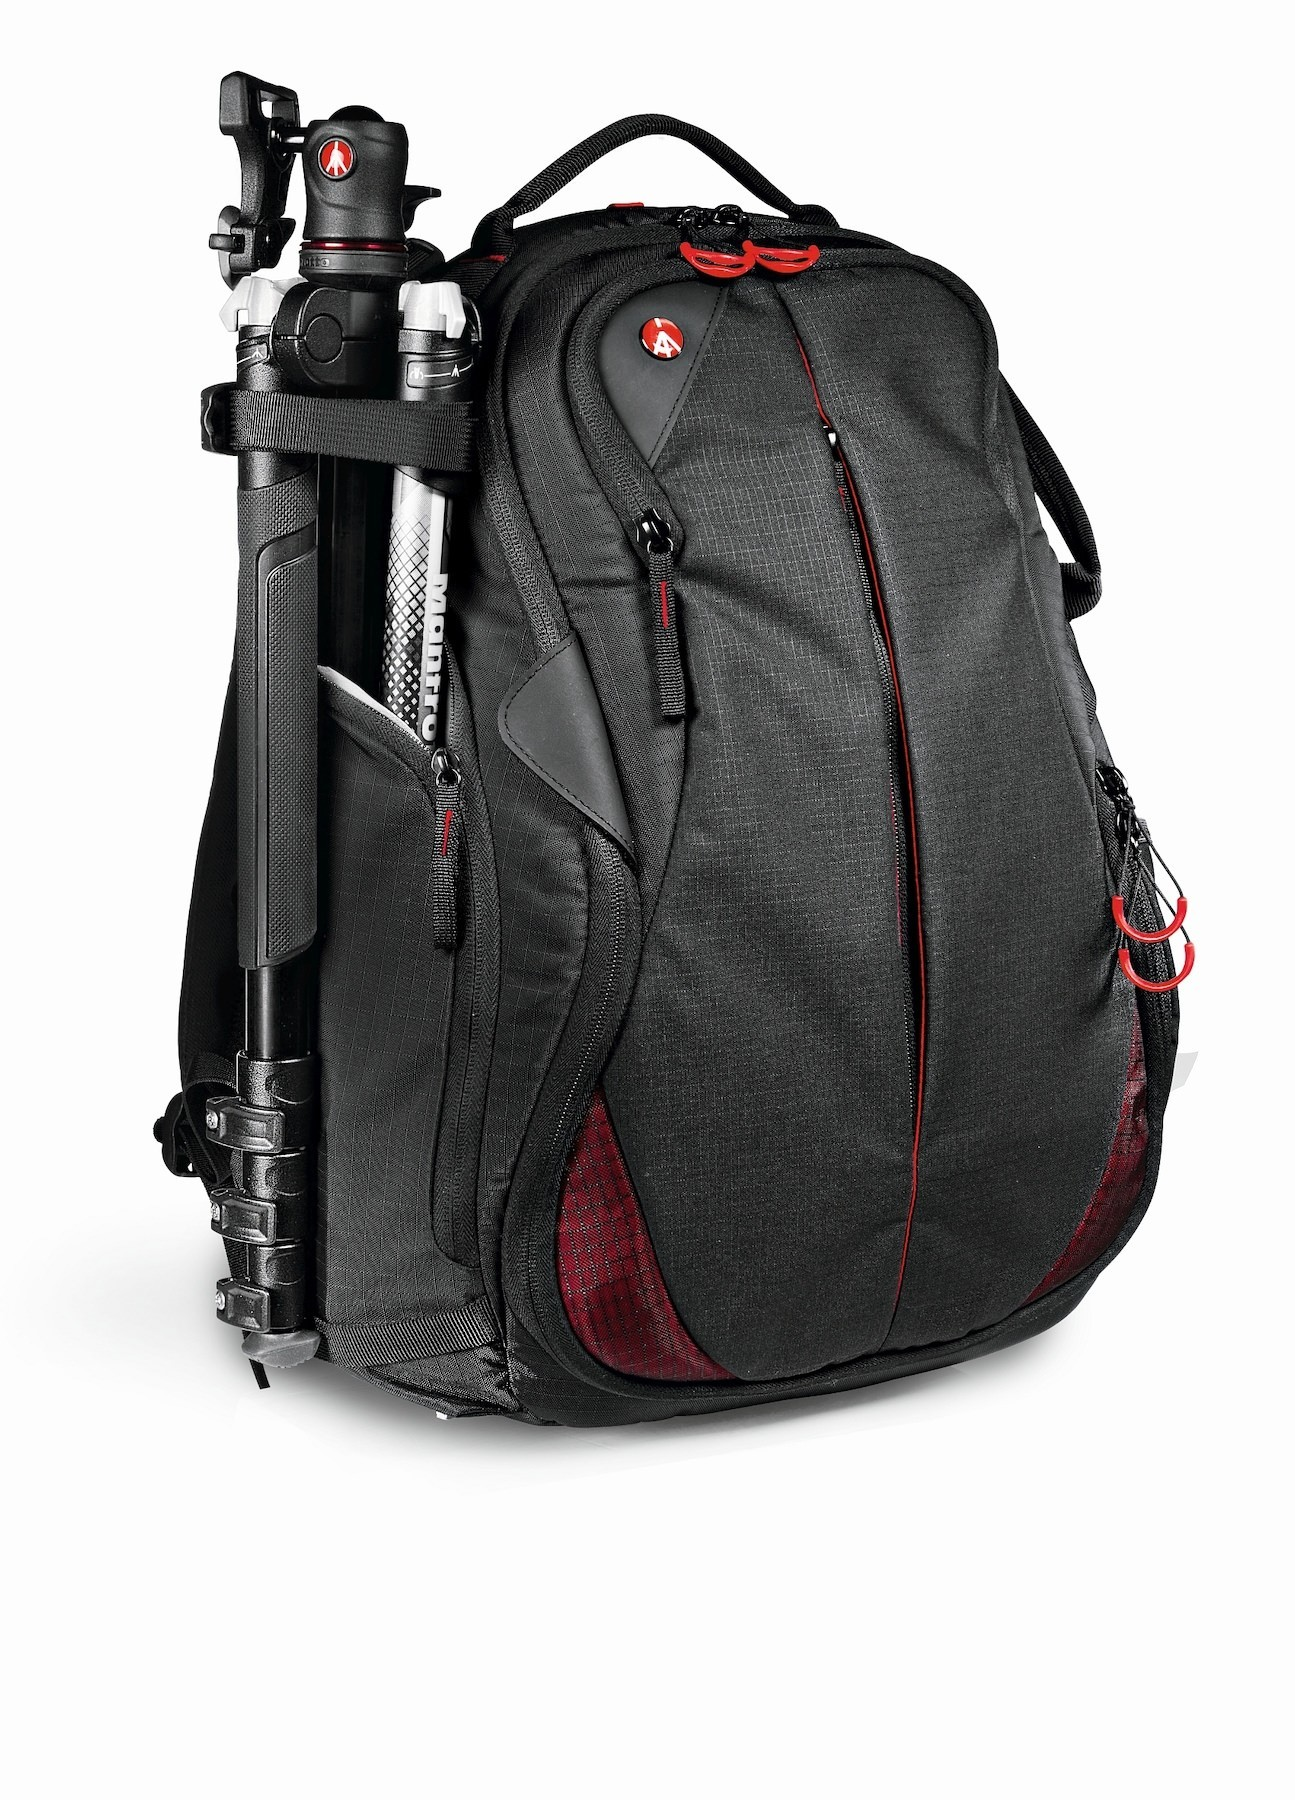 Manfrotto Pro Light PL-B-130 Bumblebee-130